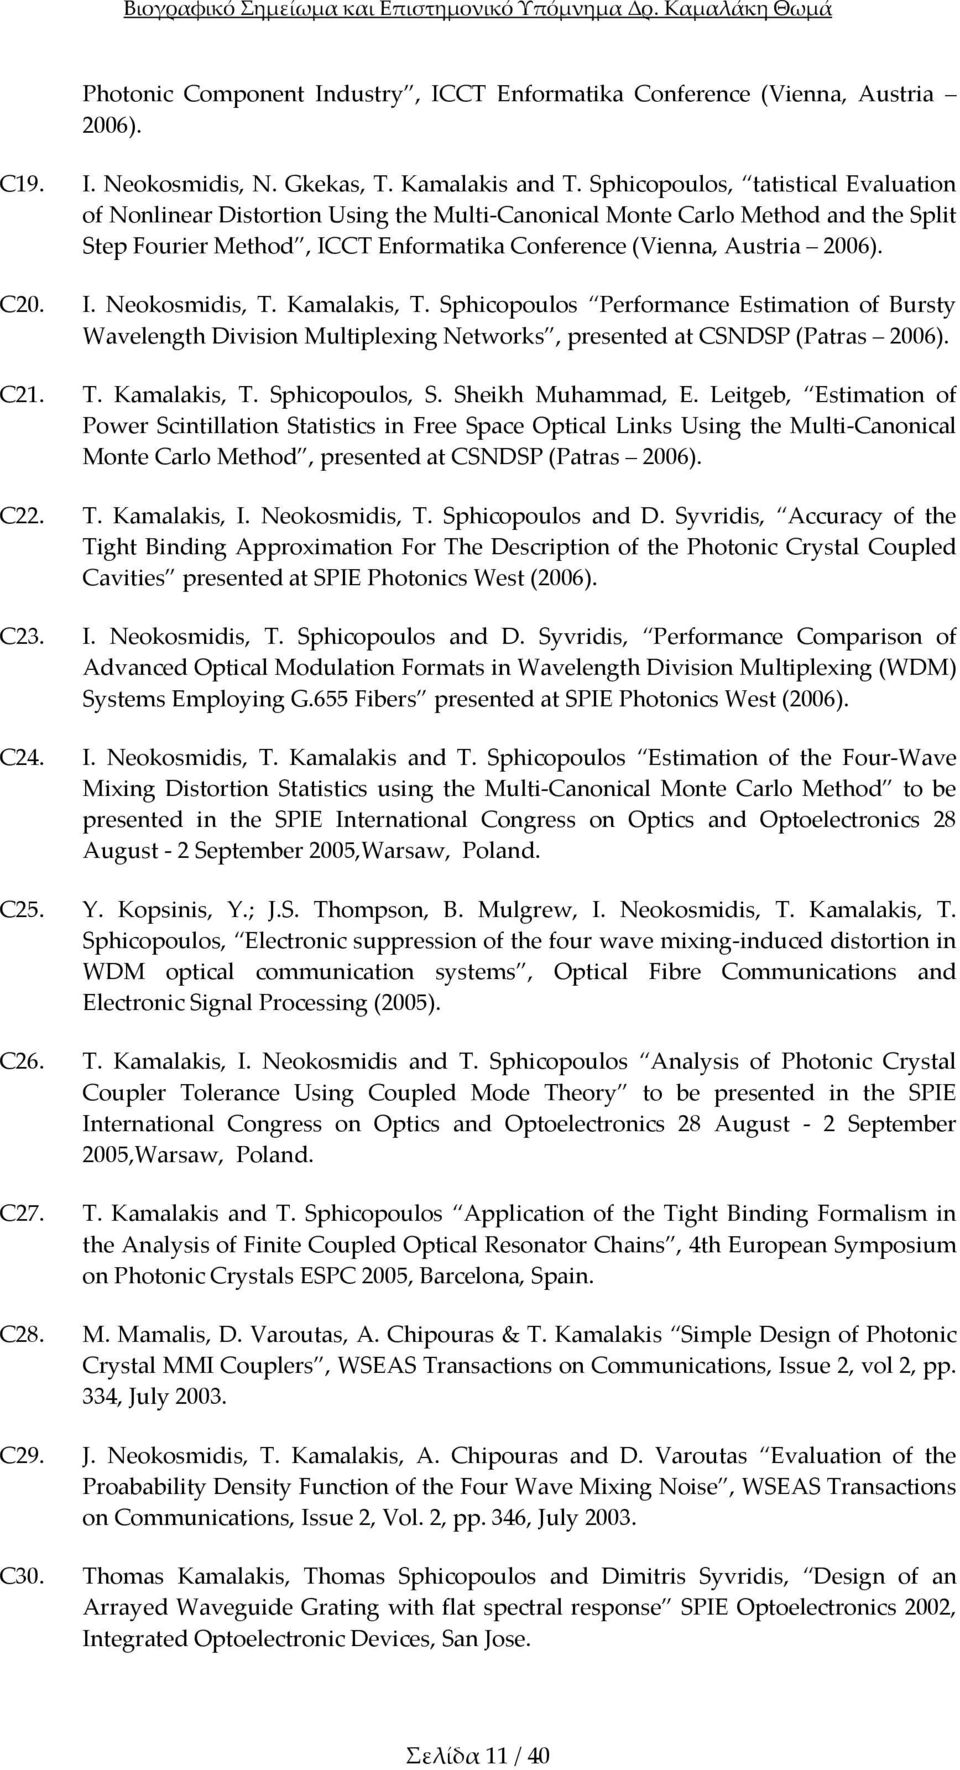 Kamalakis, T. Sphicopoulos Performance Estimation of Bursty Wavelength Division Multiplexing Networks, presented at CSNDSP (Patras 2006). C21. T. Kamalakis, T. Sphicopoulos, S. Sheikh Muhammad, E.